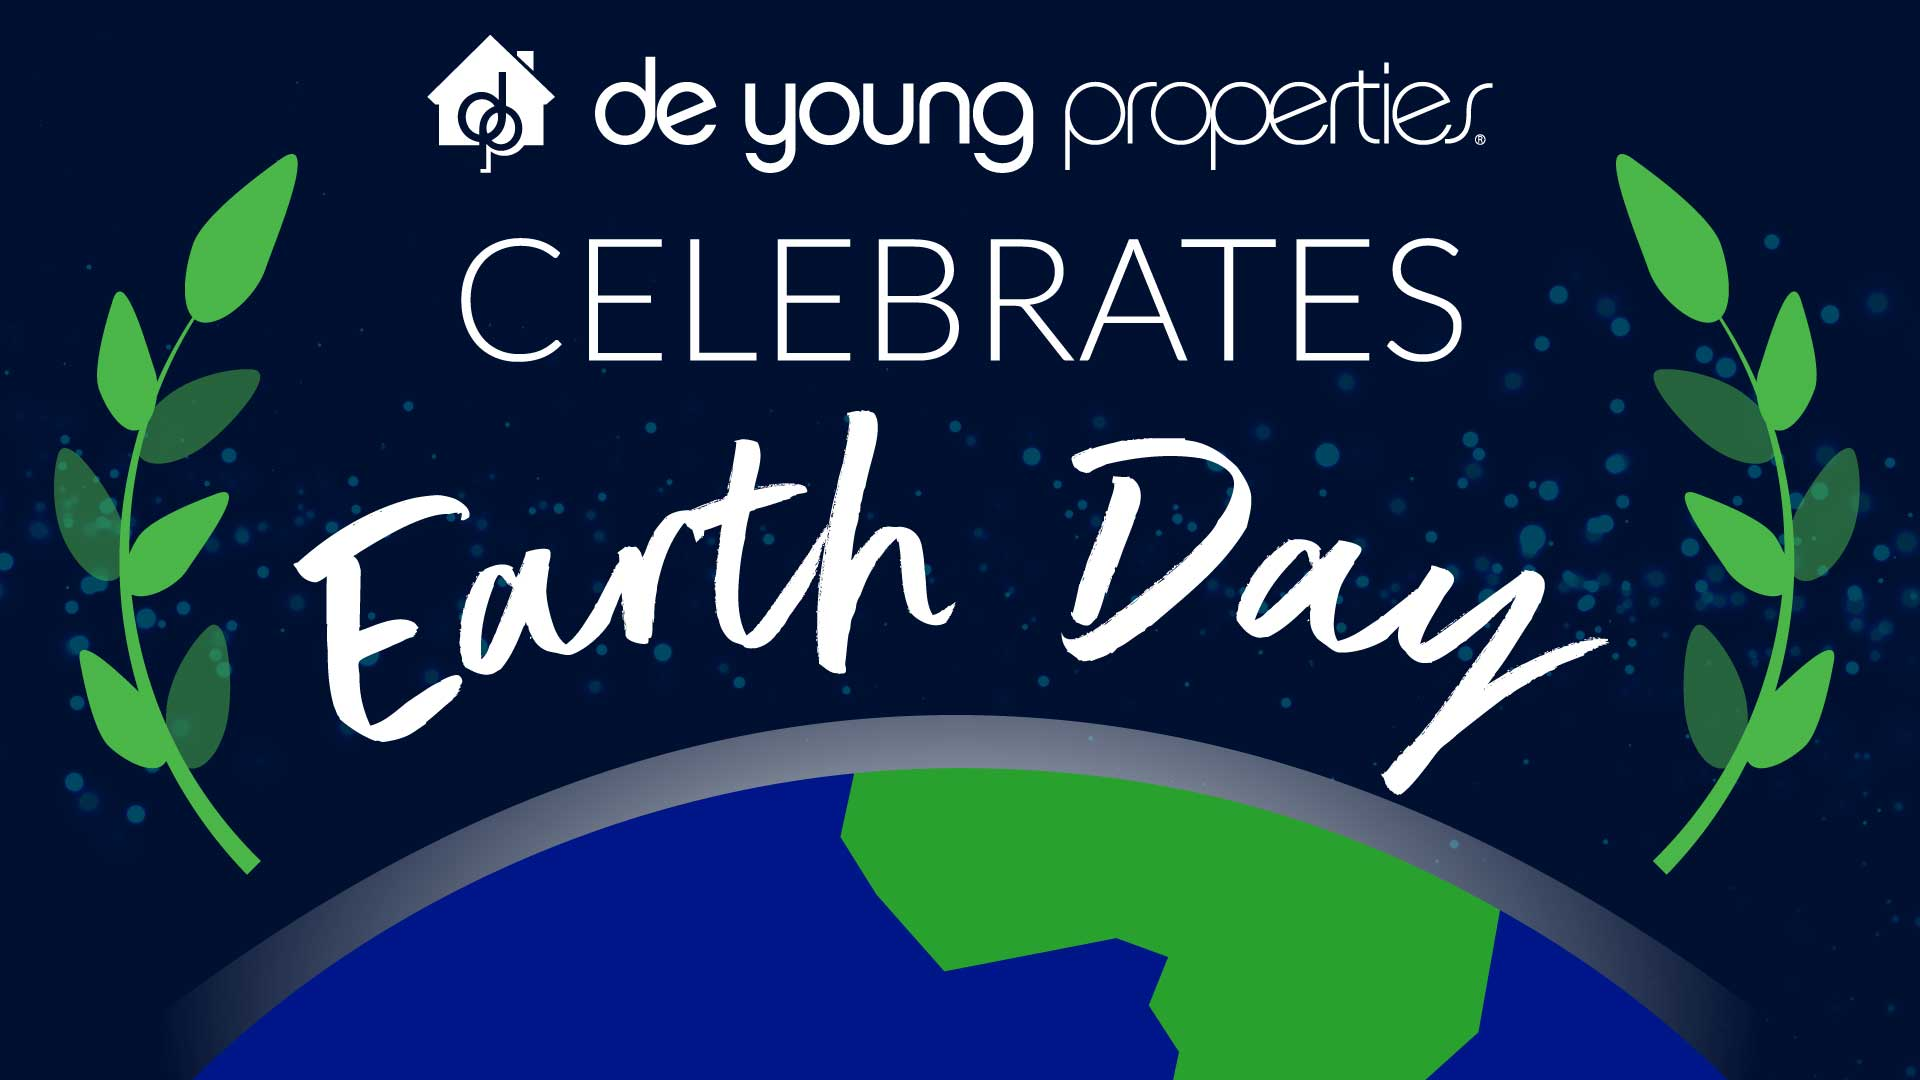 Live Green: Check Out All The Ways To Celebrate Earth Day This Year!